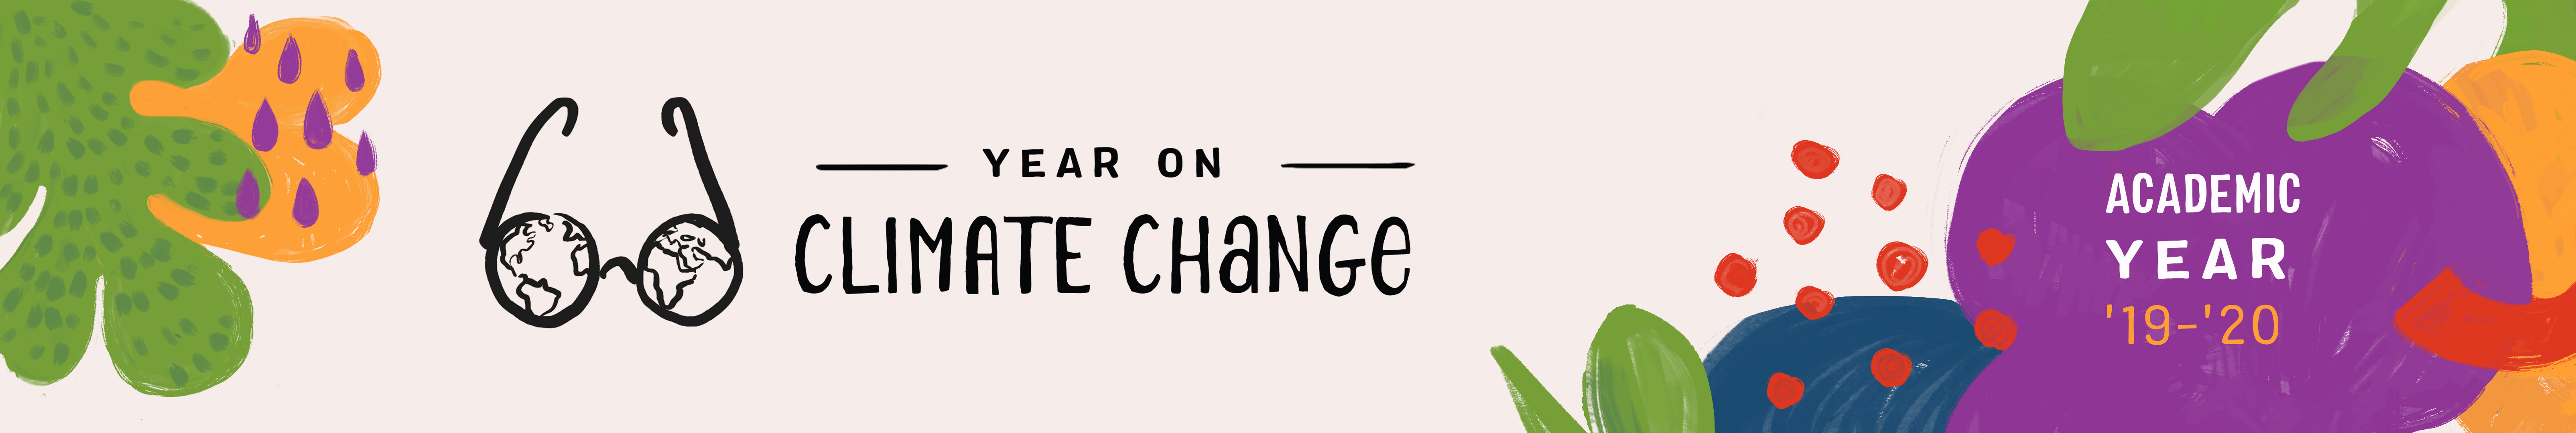 Graphic logo for Year on Climate Change Academic Year 2019-20